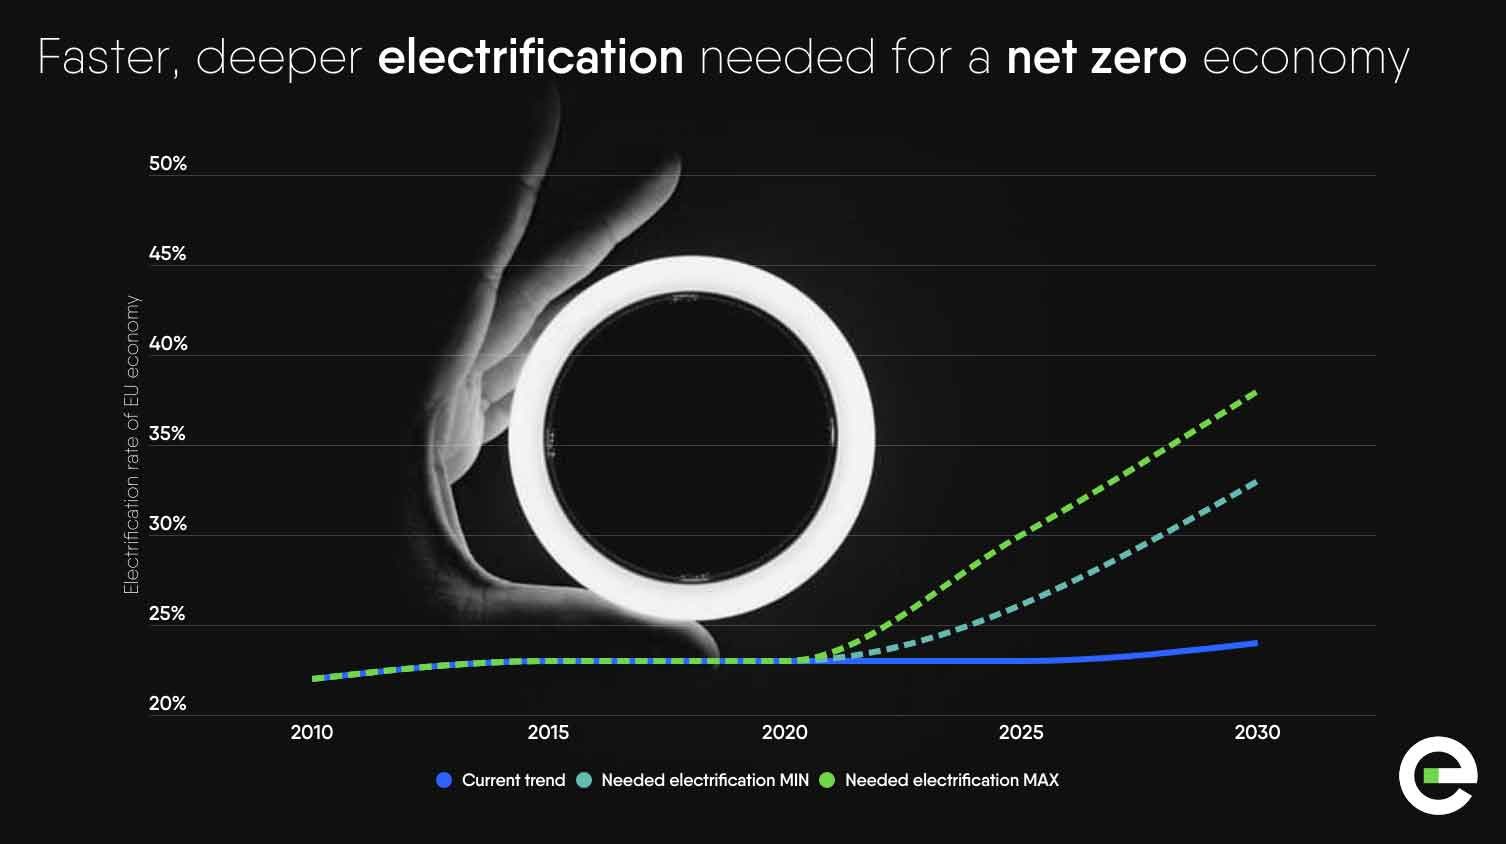 Power Barometer 2020: faster, deeper electrification needed for a net zero economy